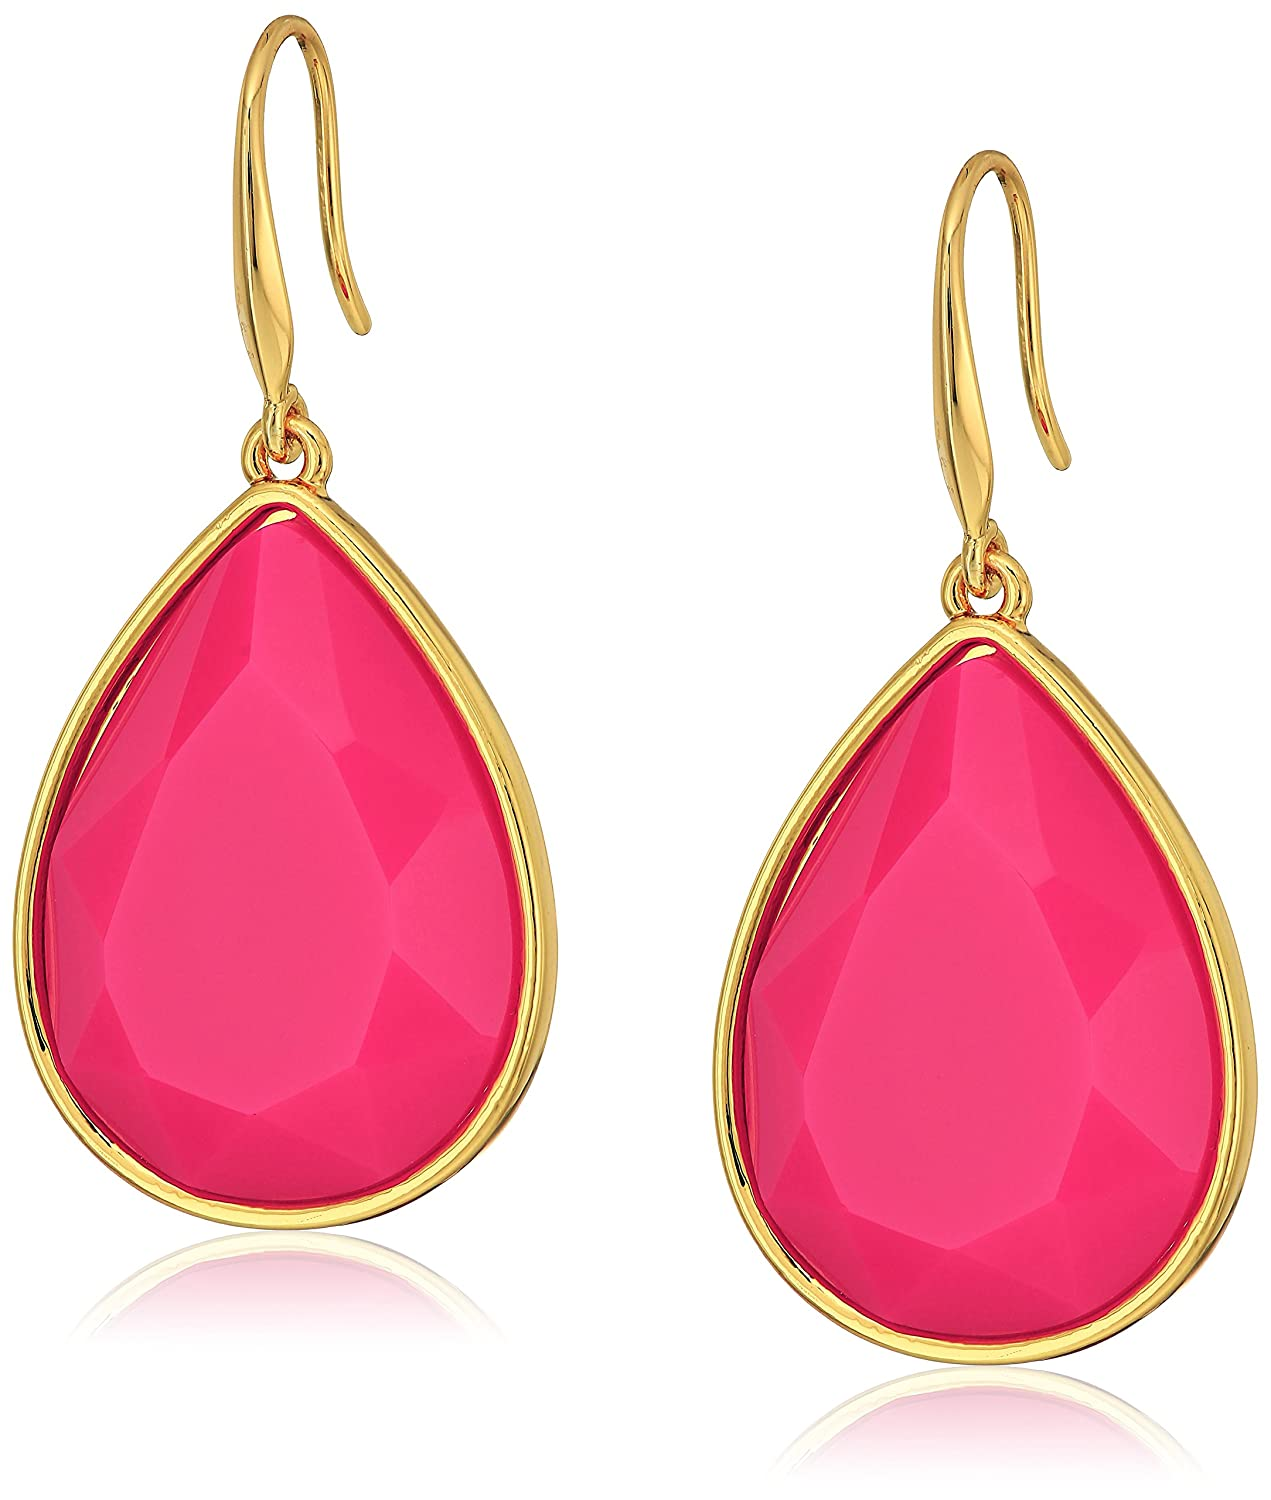 Trina Turk Core Ii Teardrop Earrings Trina Turk Jewelry TTP00212G660